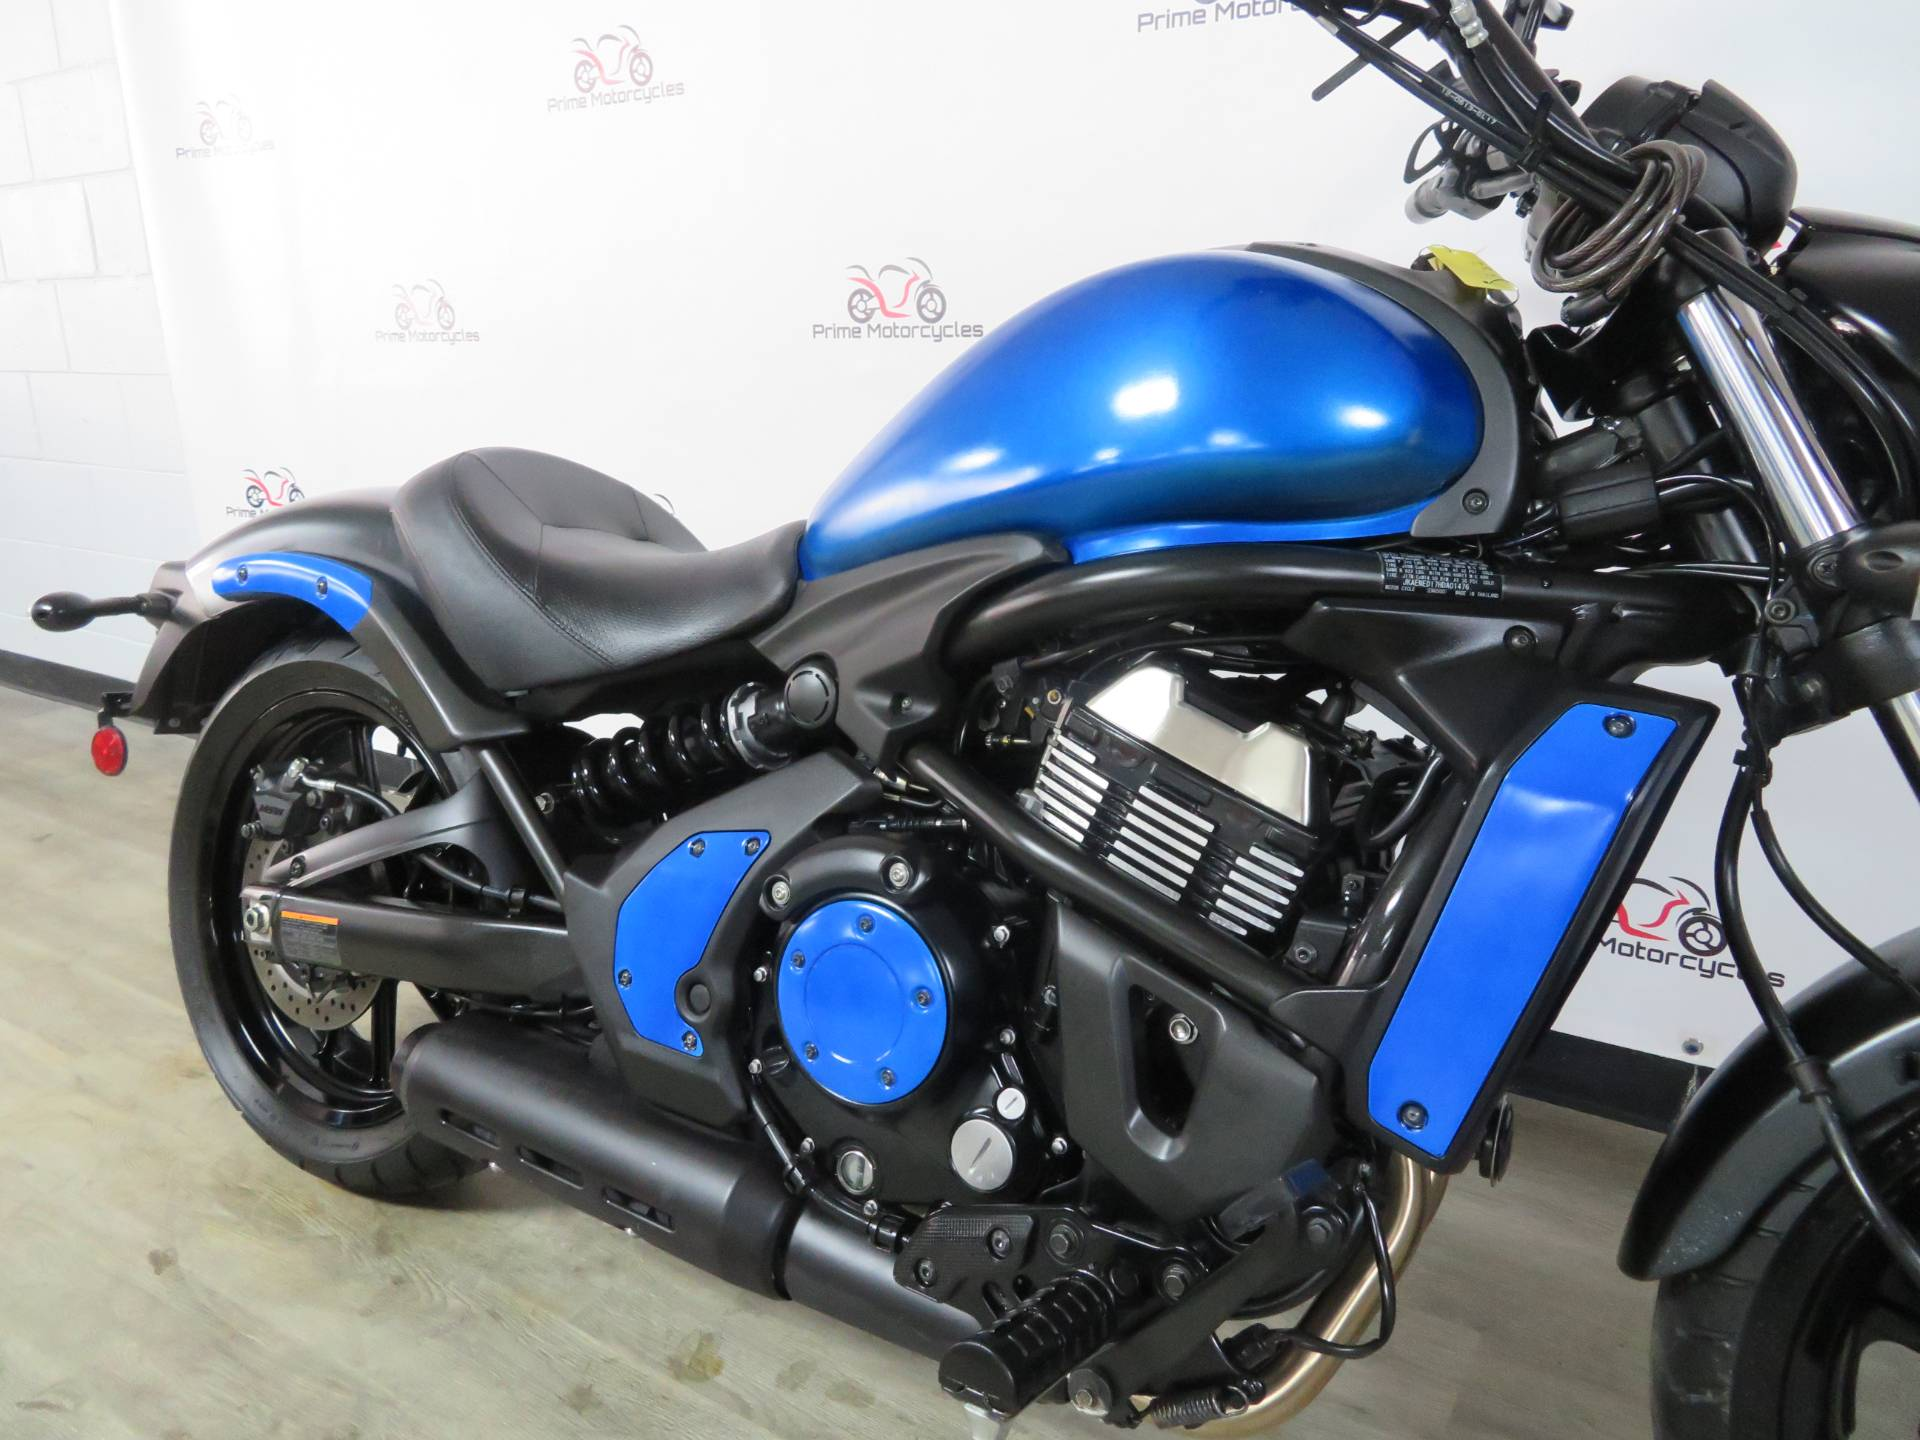 2017 Kawasaki Vulcan S ABS SE in Sanford, Florida - Photo 18